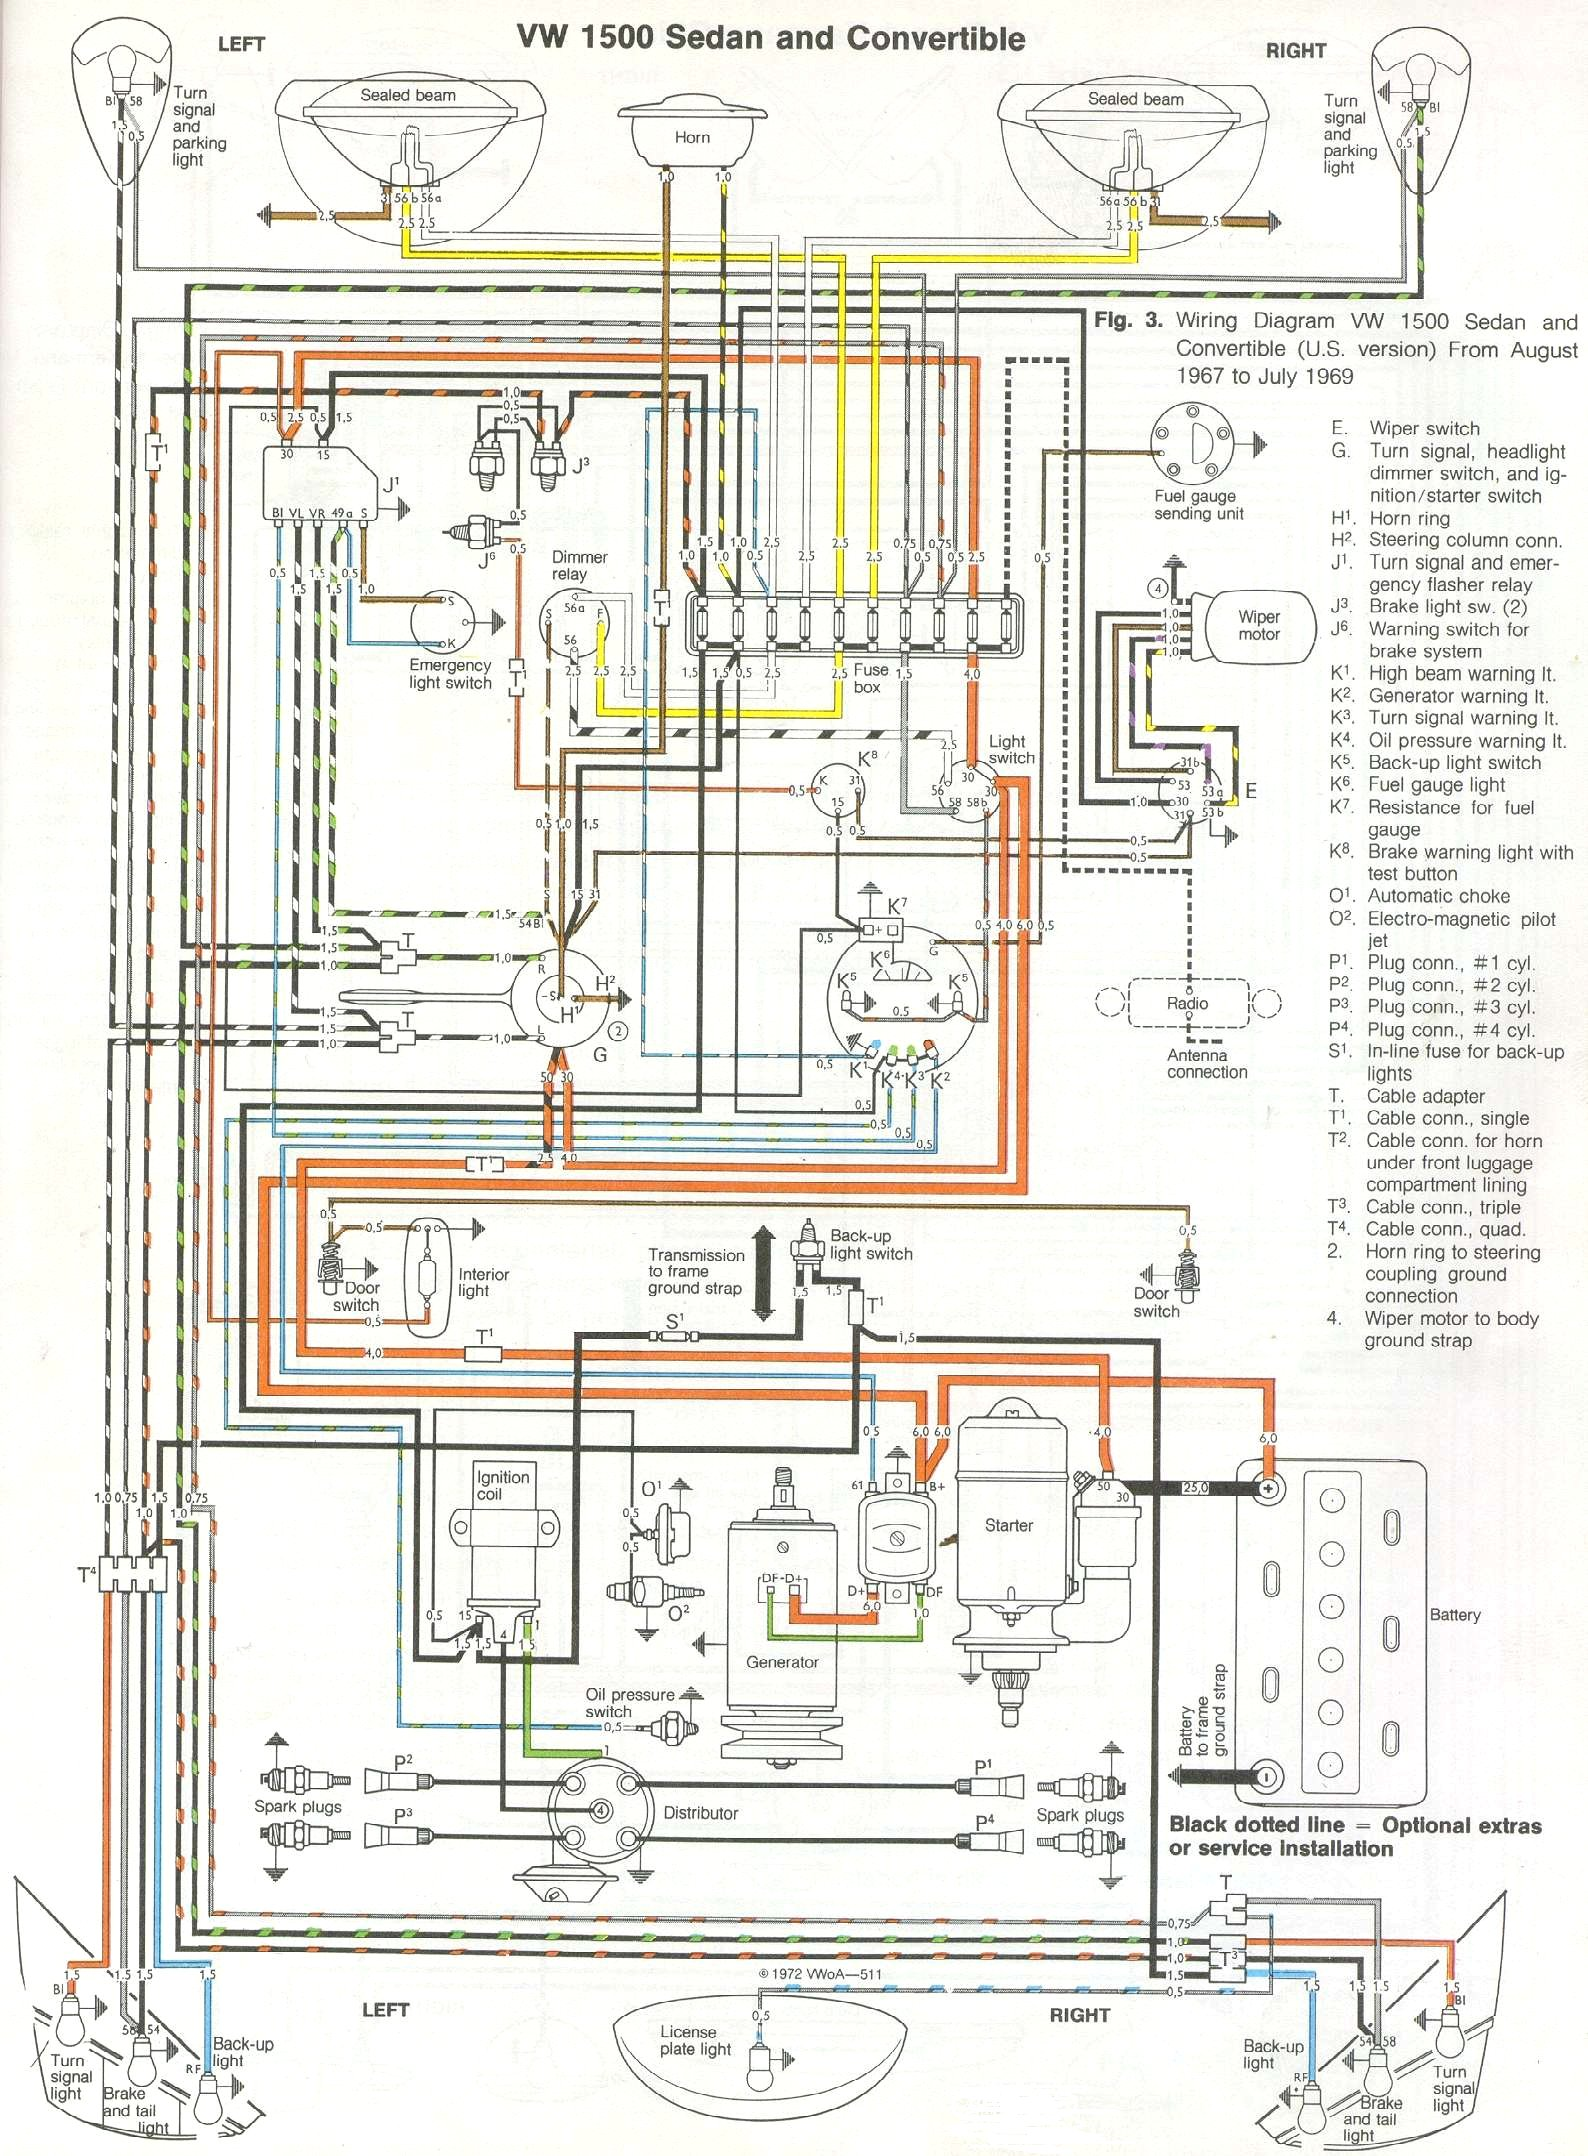 bug_6869 1969 71 beetle wiring diagram thegoldenbug com 1970 vw bug wiring diagram at creativeand.co